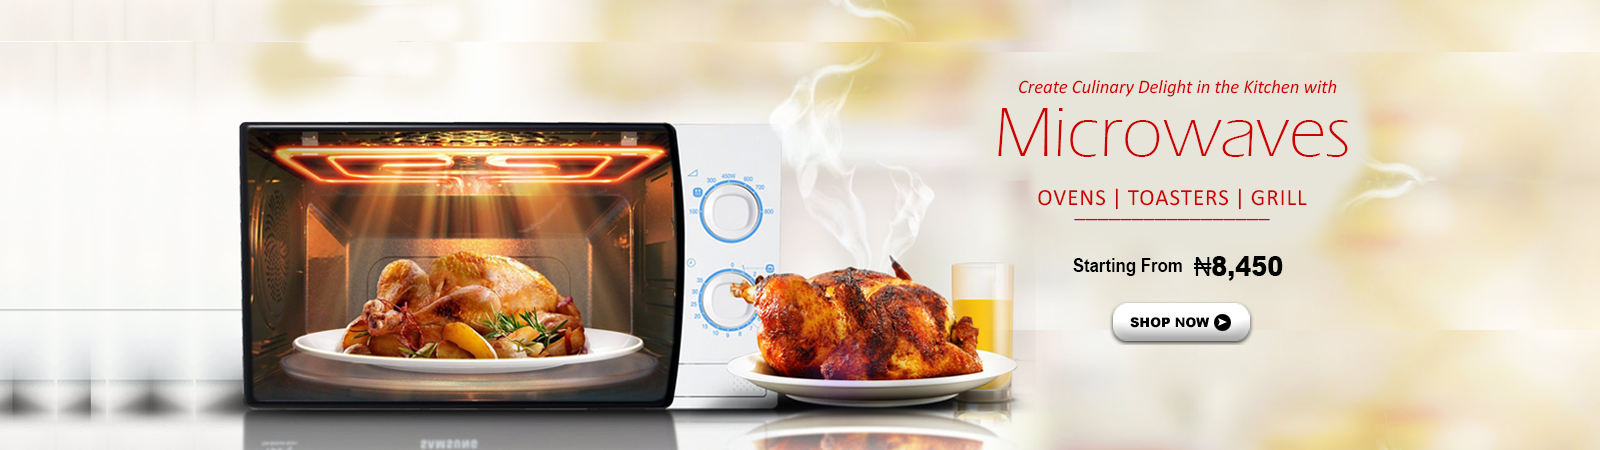 Buy Microwaves, Ovens and Toasters Online on www.decorhubng.com